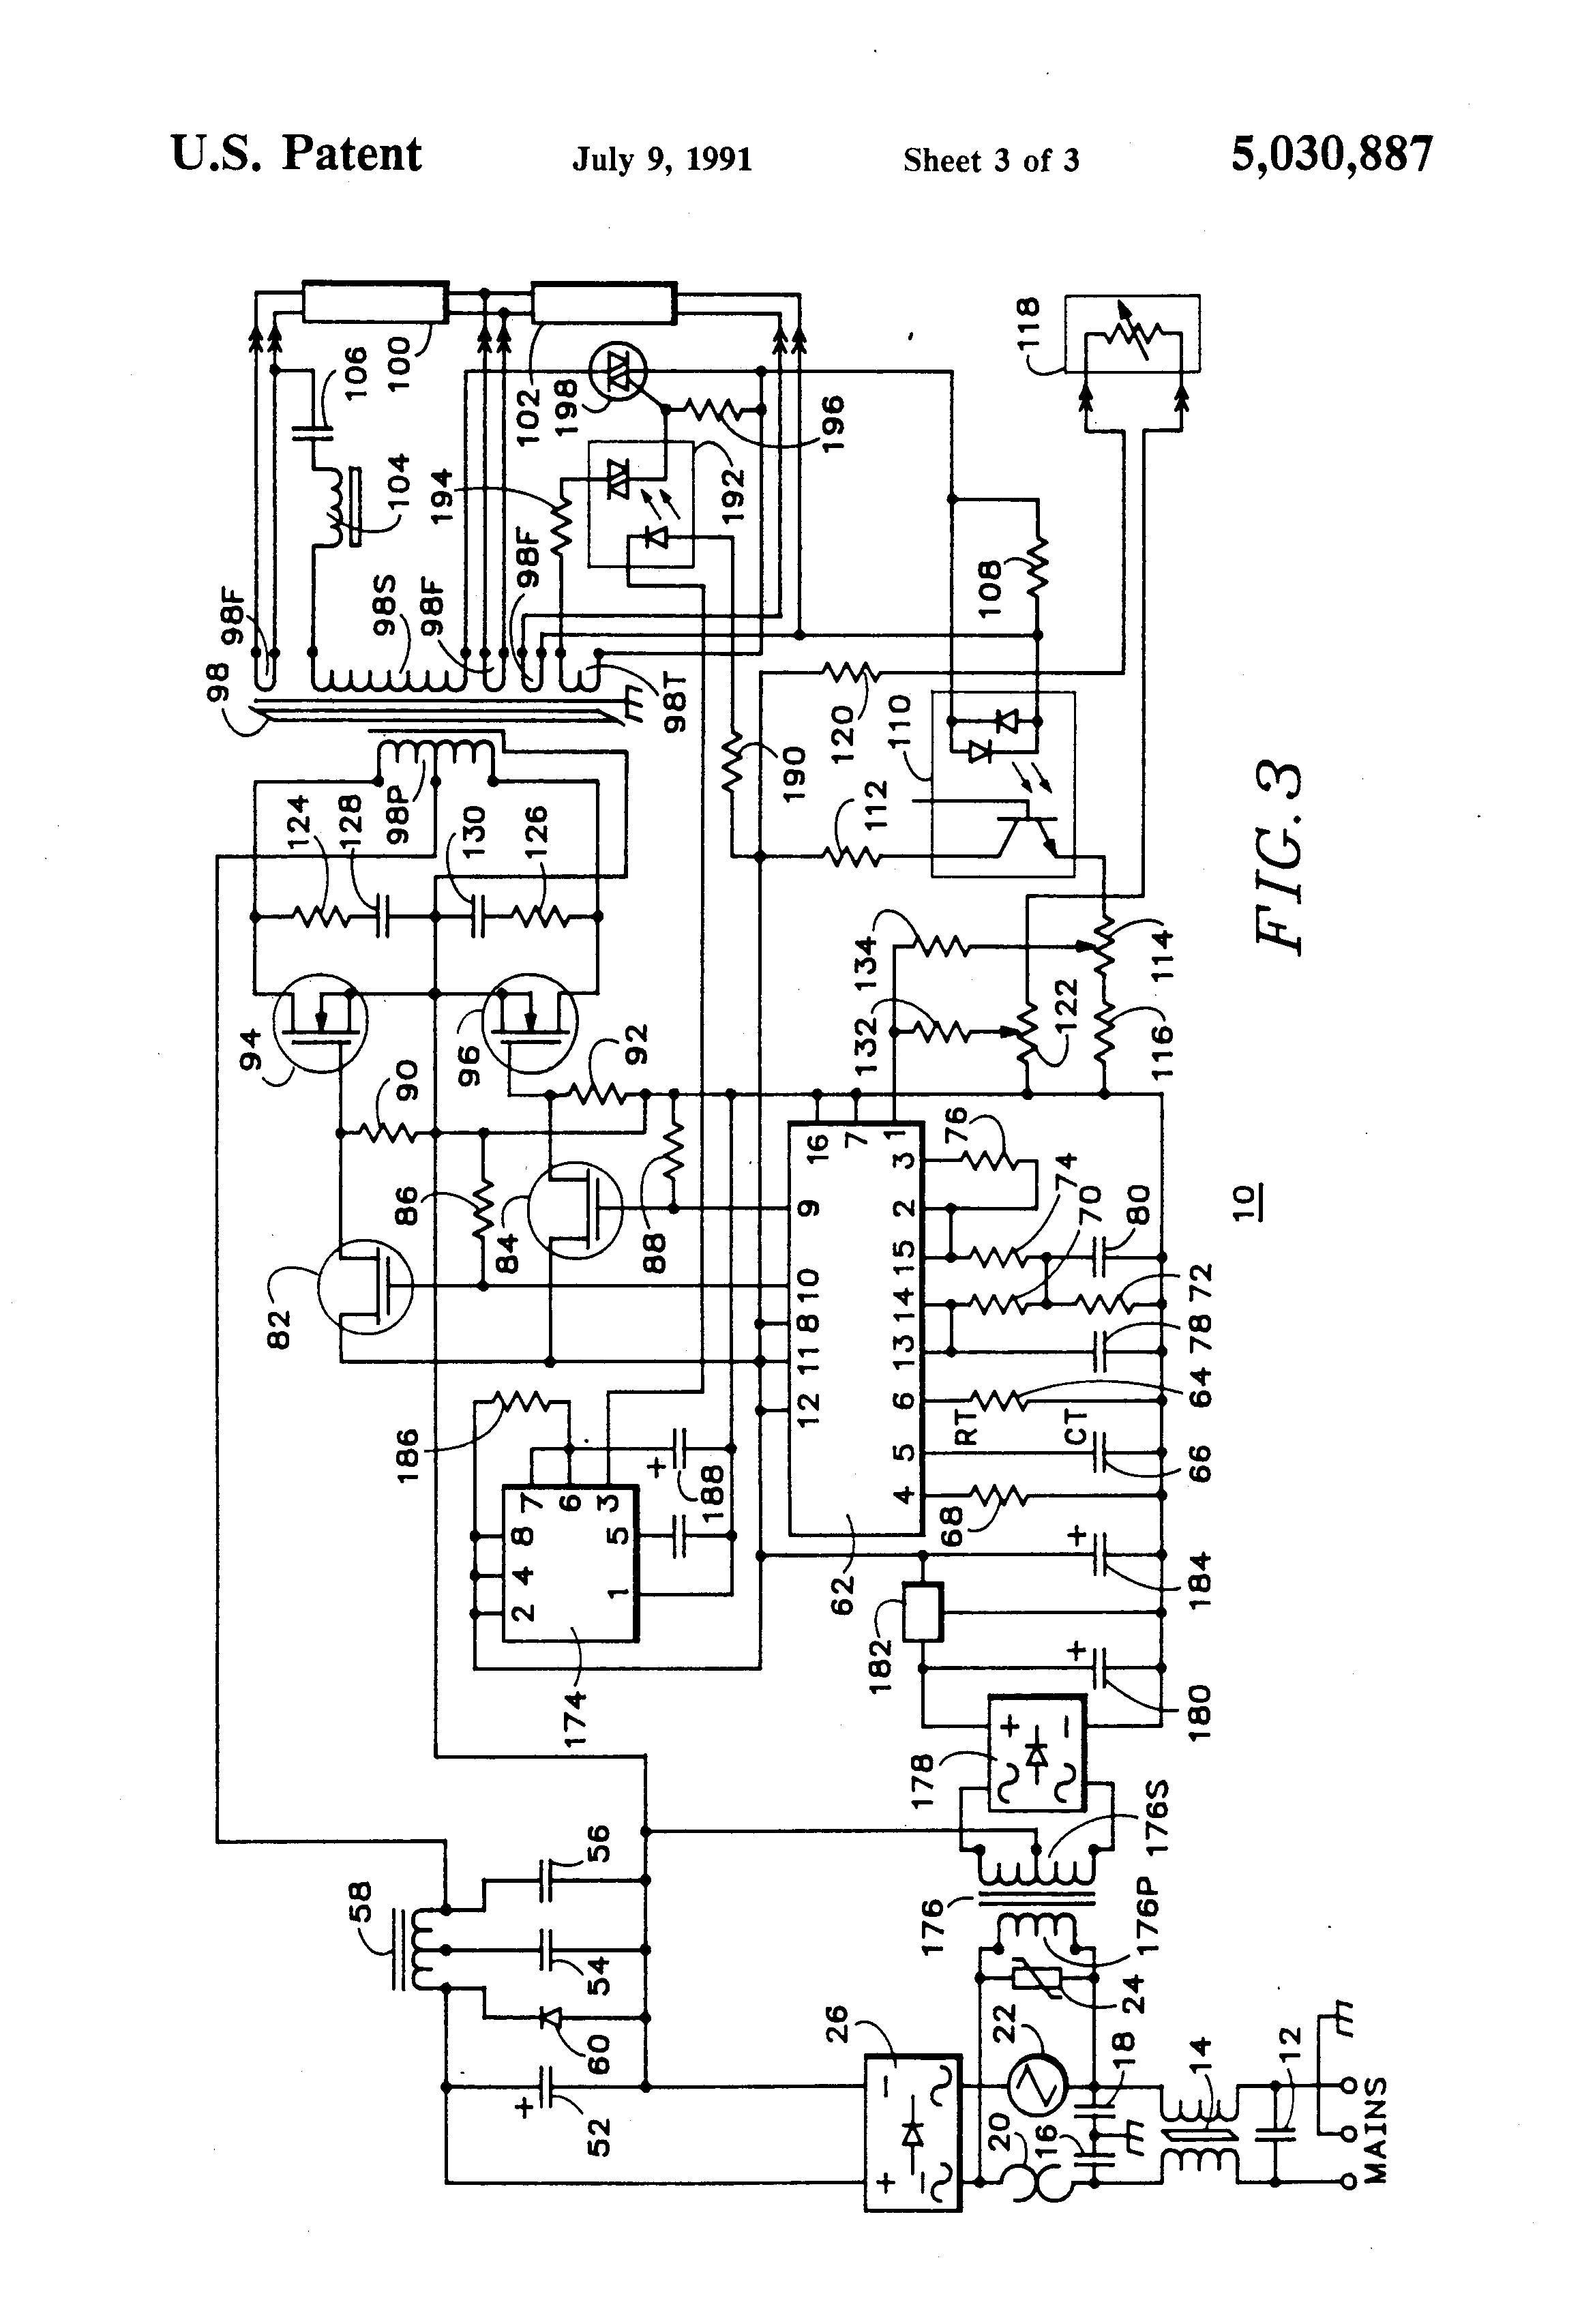 high frequency inverter circuit diagram the wiring diagram high frequency inverter circuit diagram vidim wiring diagram circuit diagram